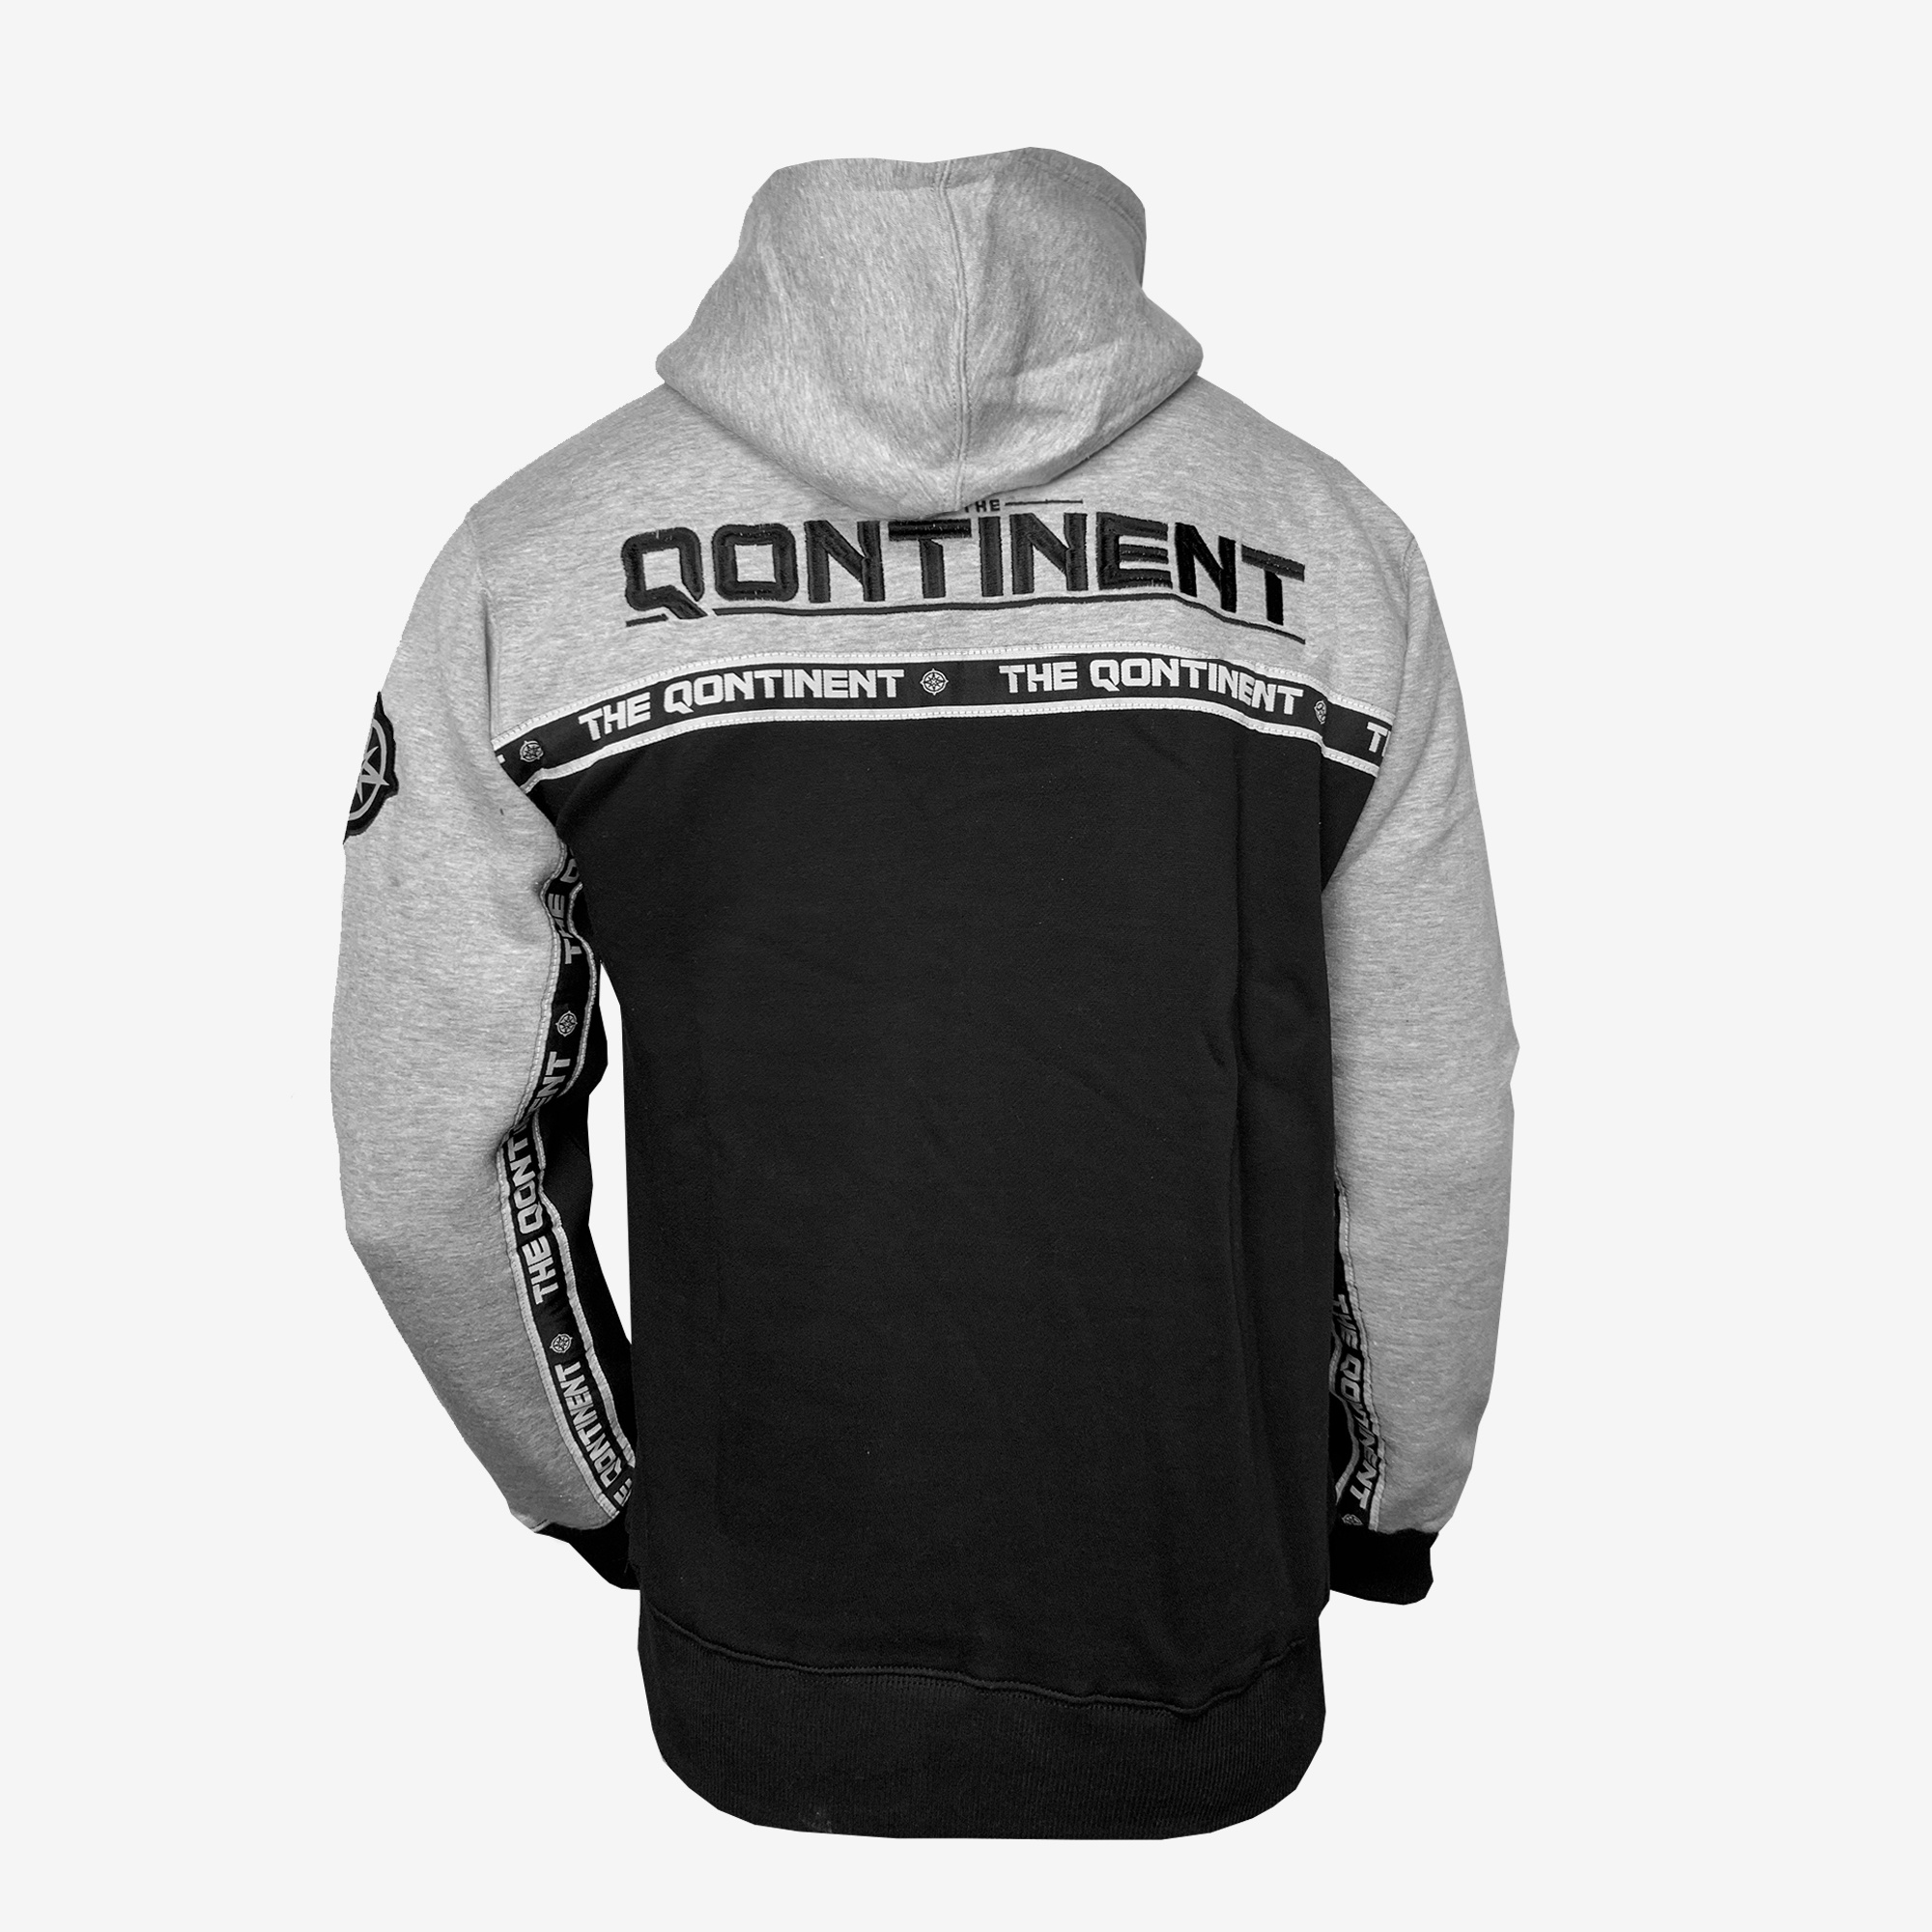 The Qontinent - 2019 Grey 2 Tone Hoody